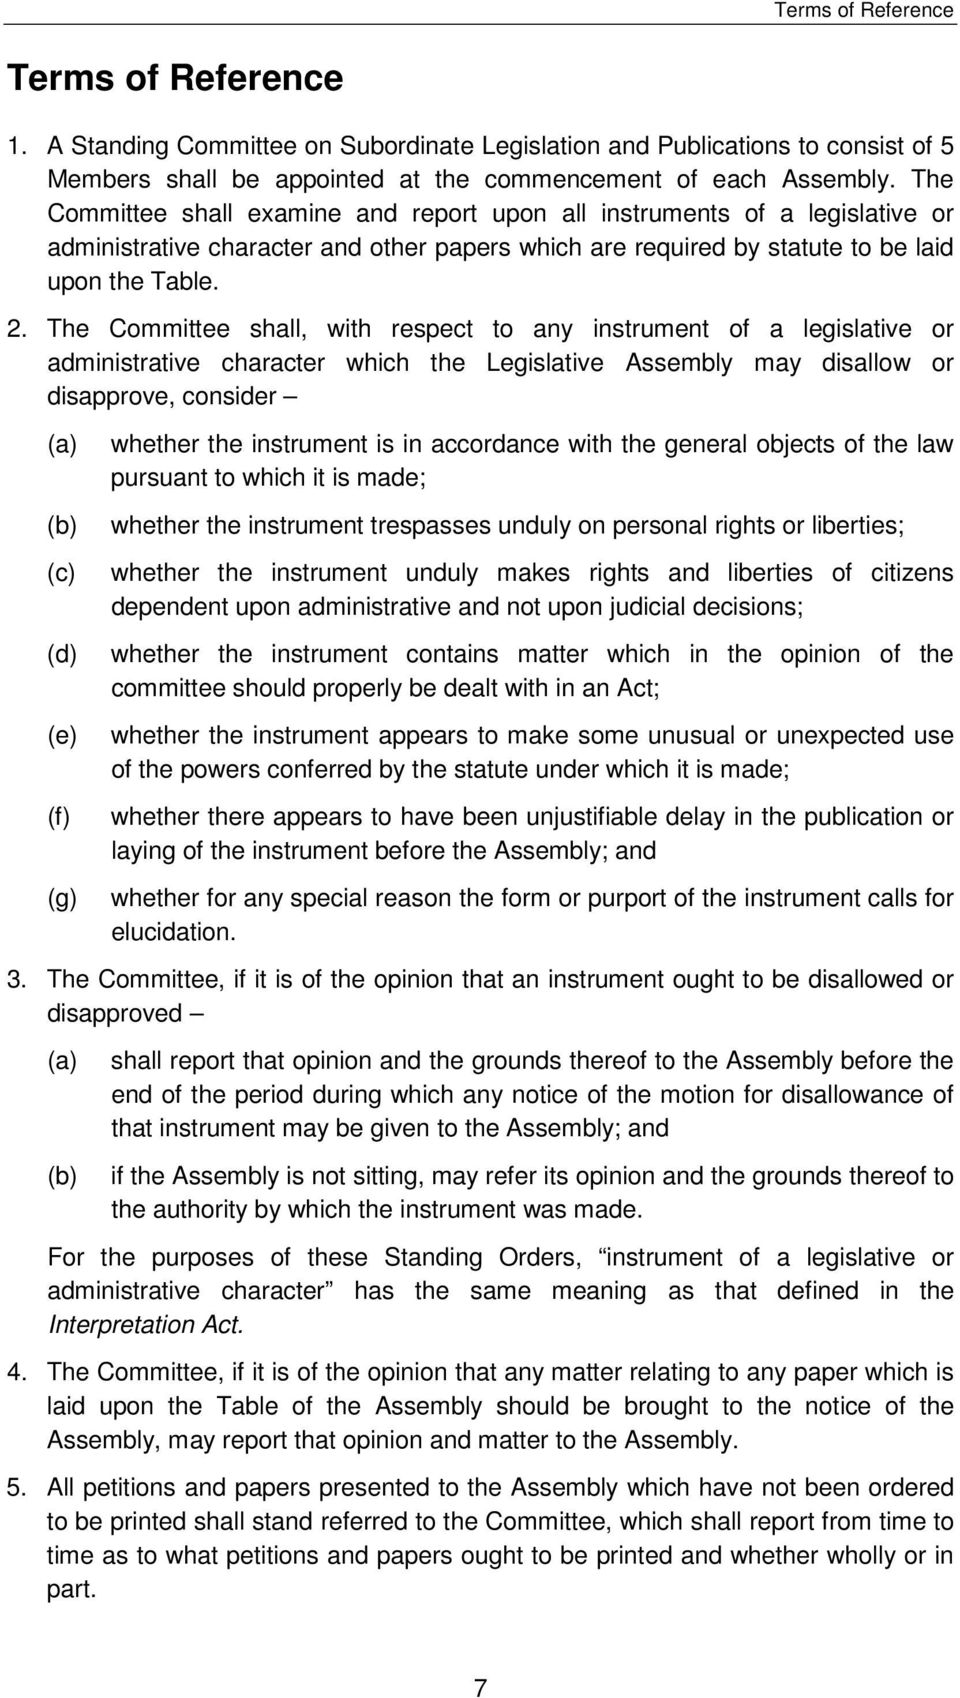 The Committee shall, with respect to any instrument of a legislative or administrative character which the Legislative Assembly may disallow or disapprove, consider (a) (b) (c) (d) (e) (f) (g)